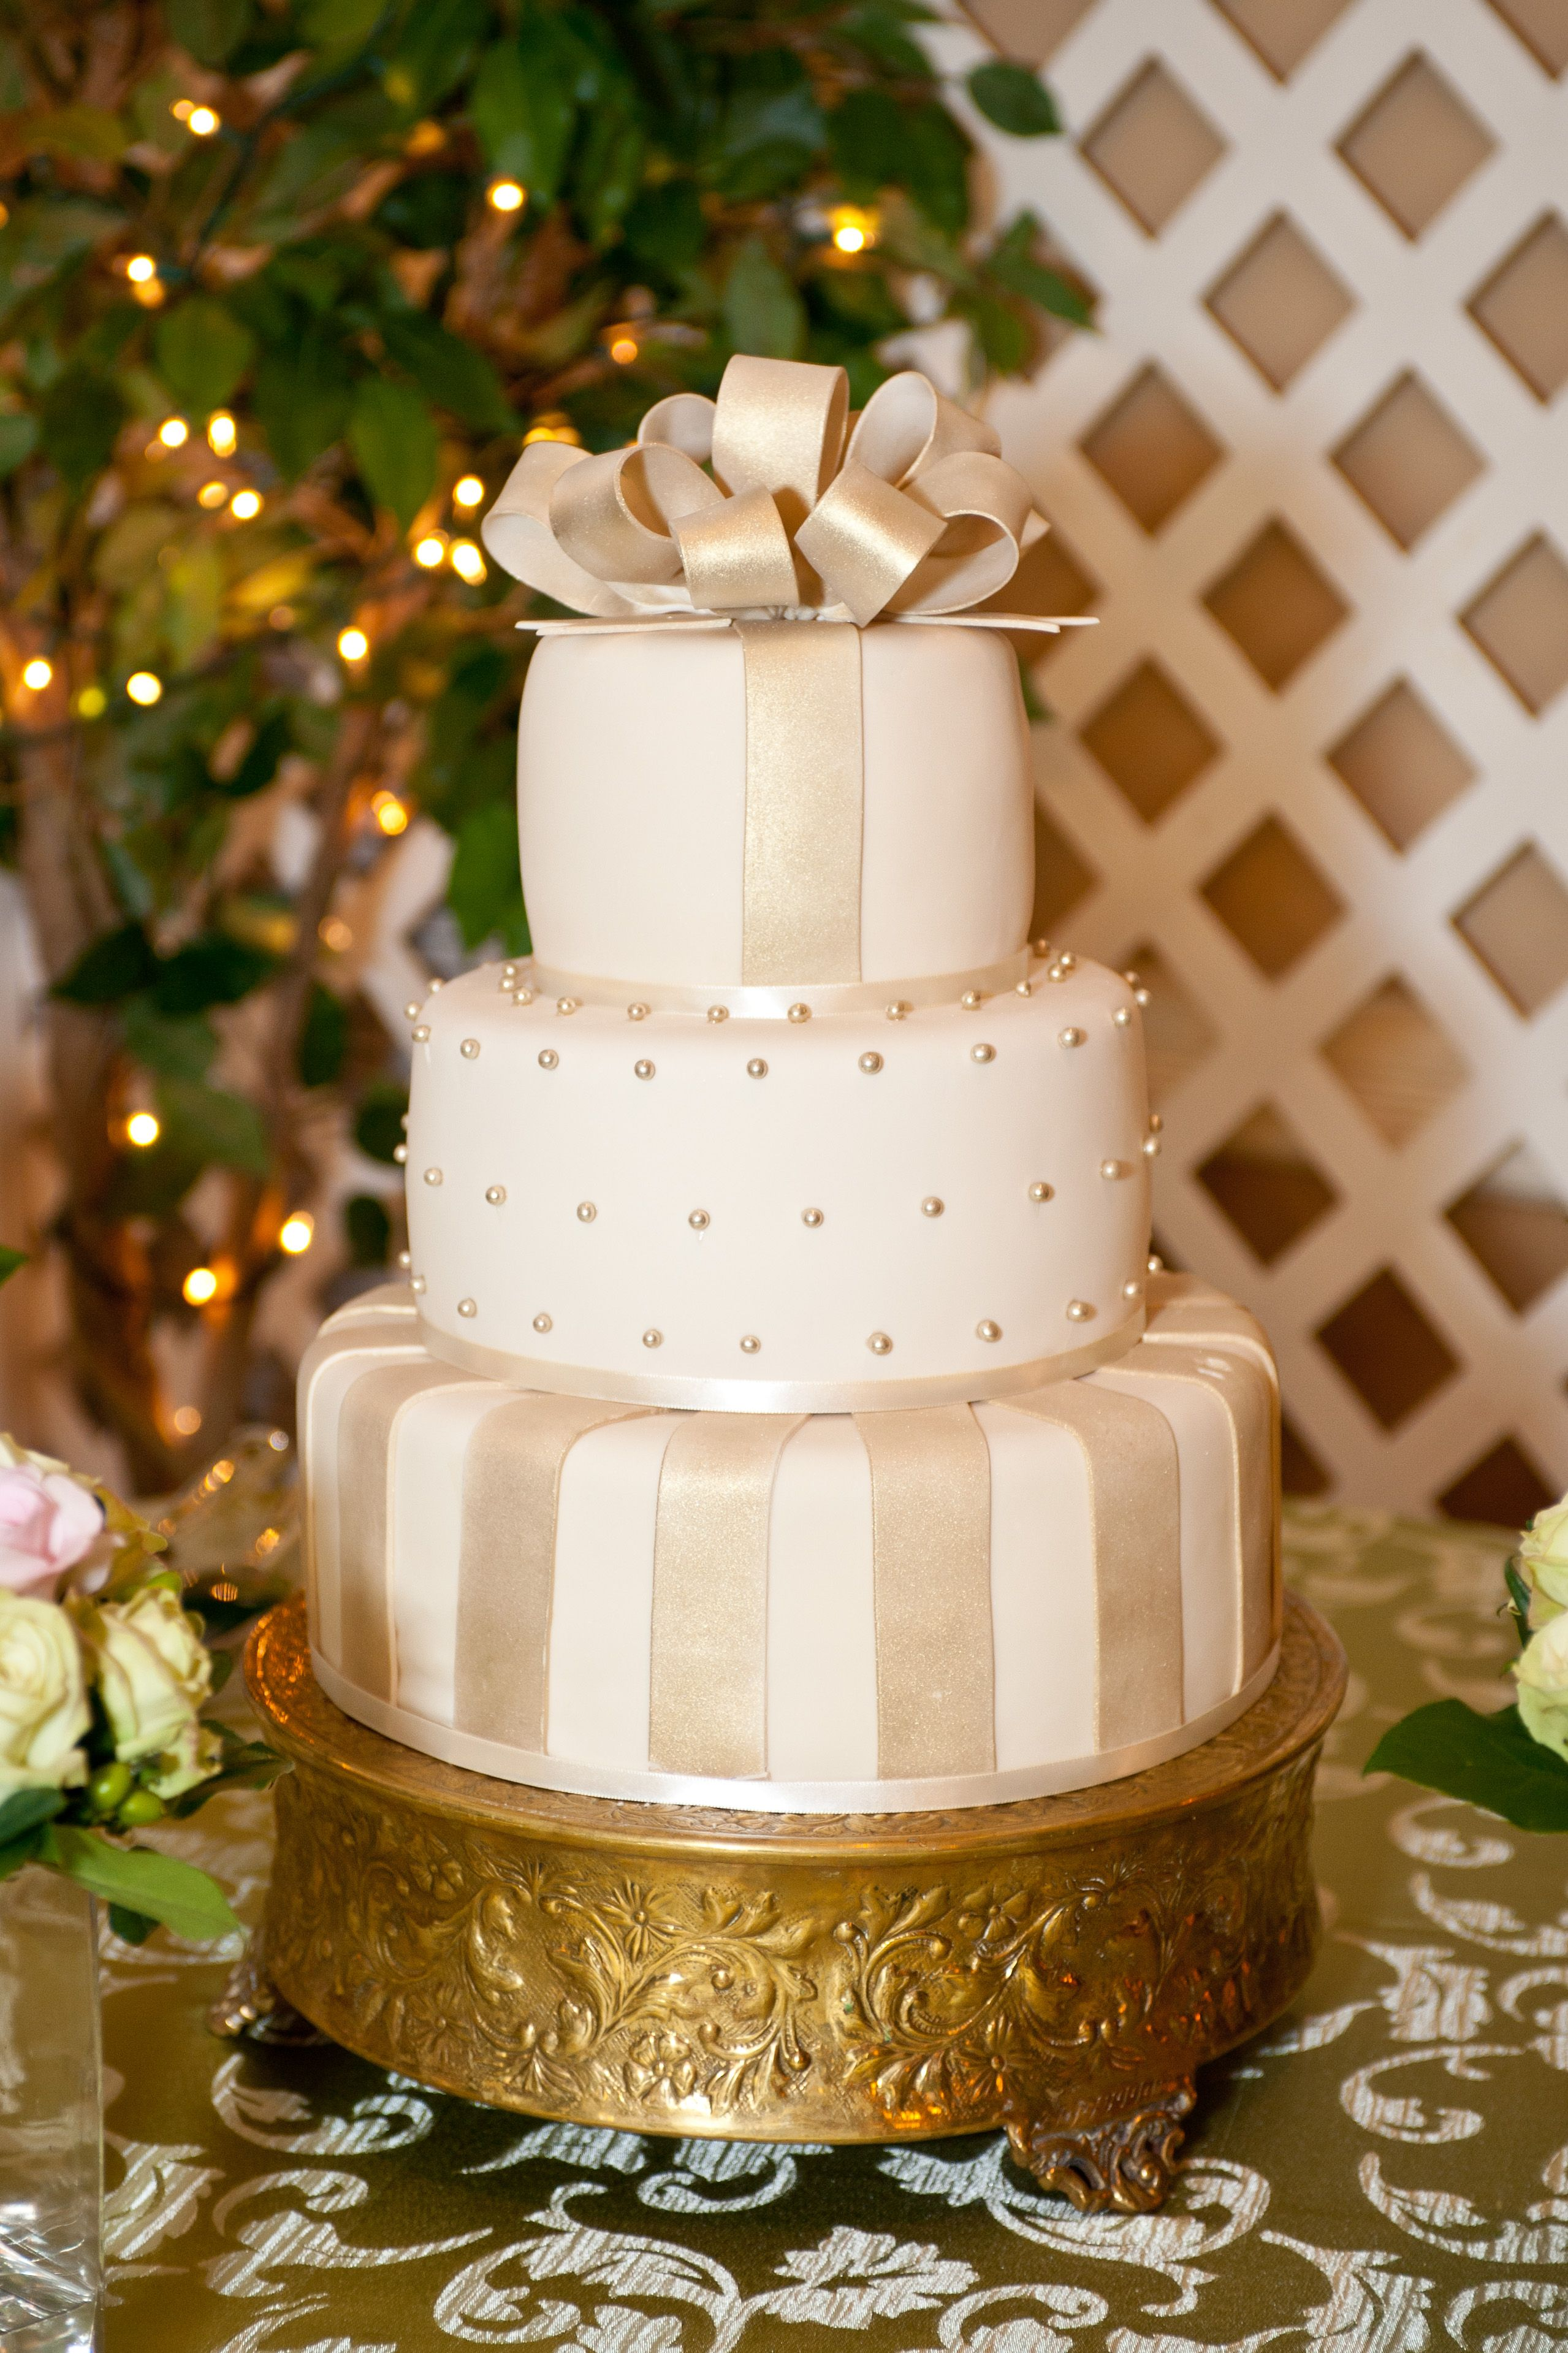 Gold And Cream Fondant 3 Tiered Round Cake With Decorations Bow Edible Pearls